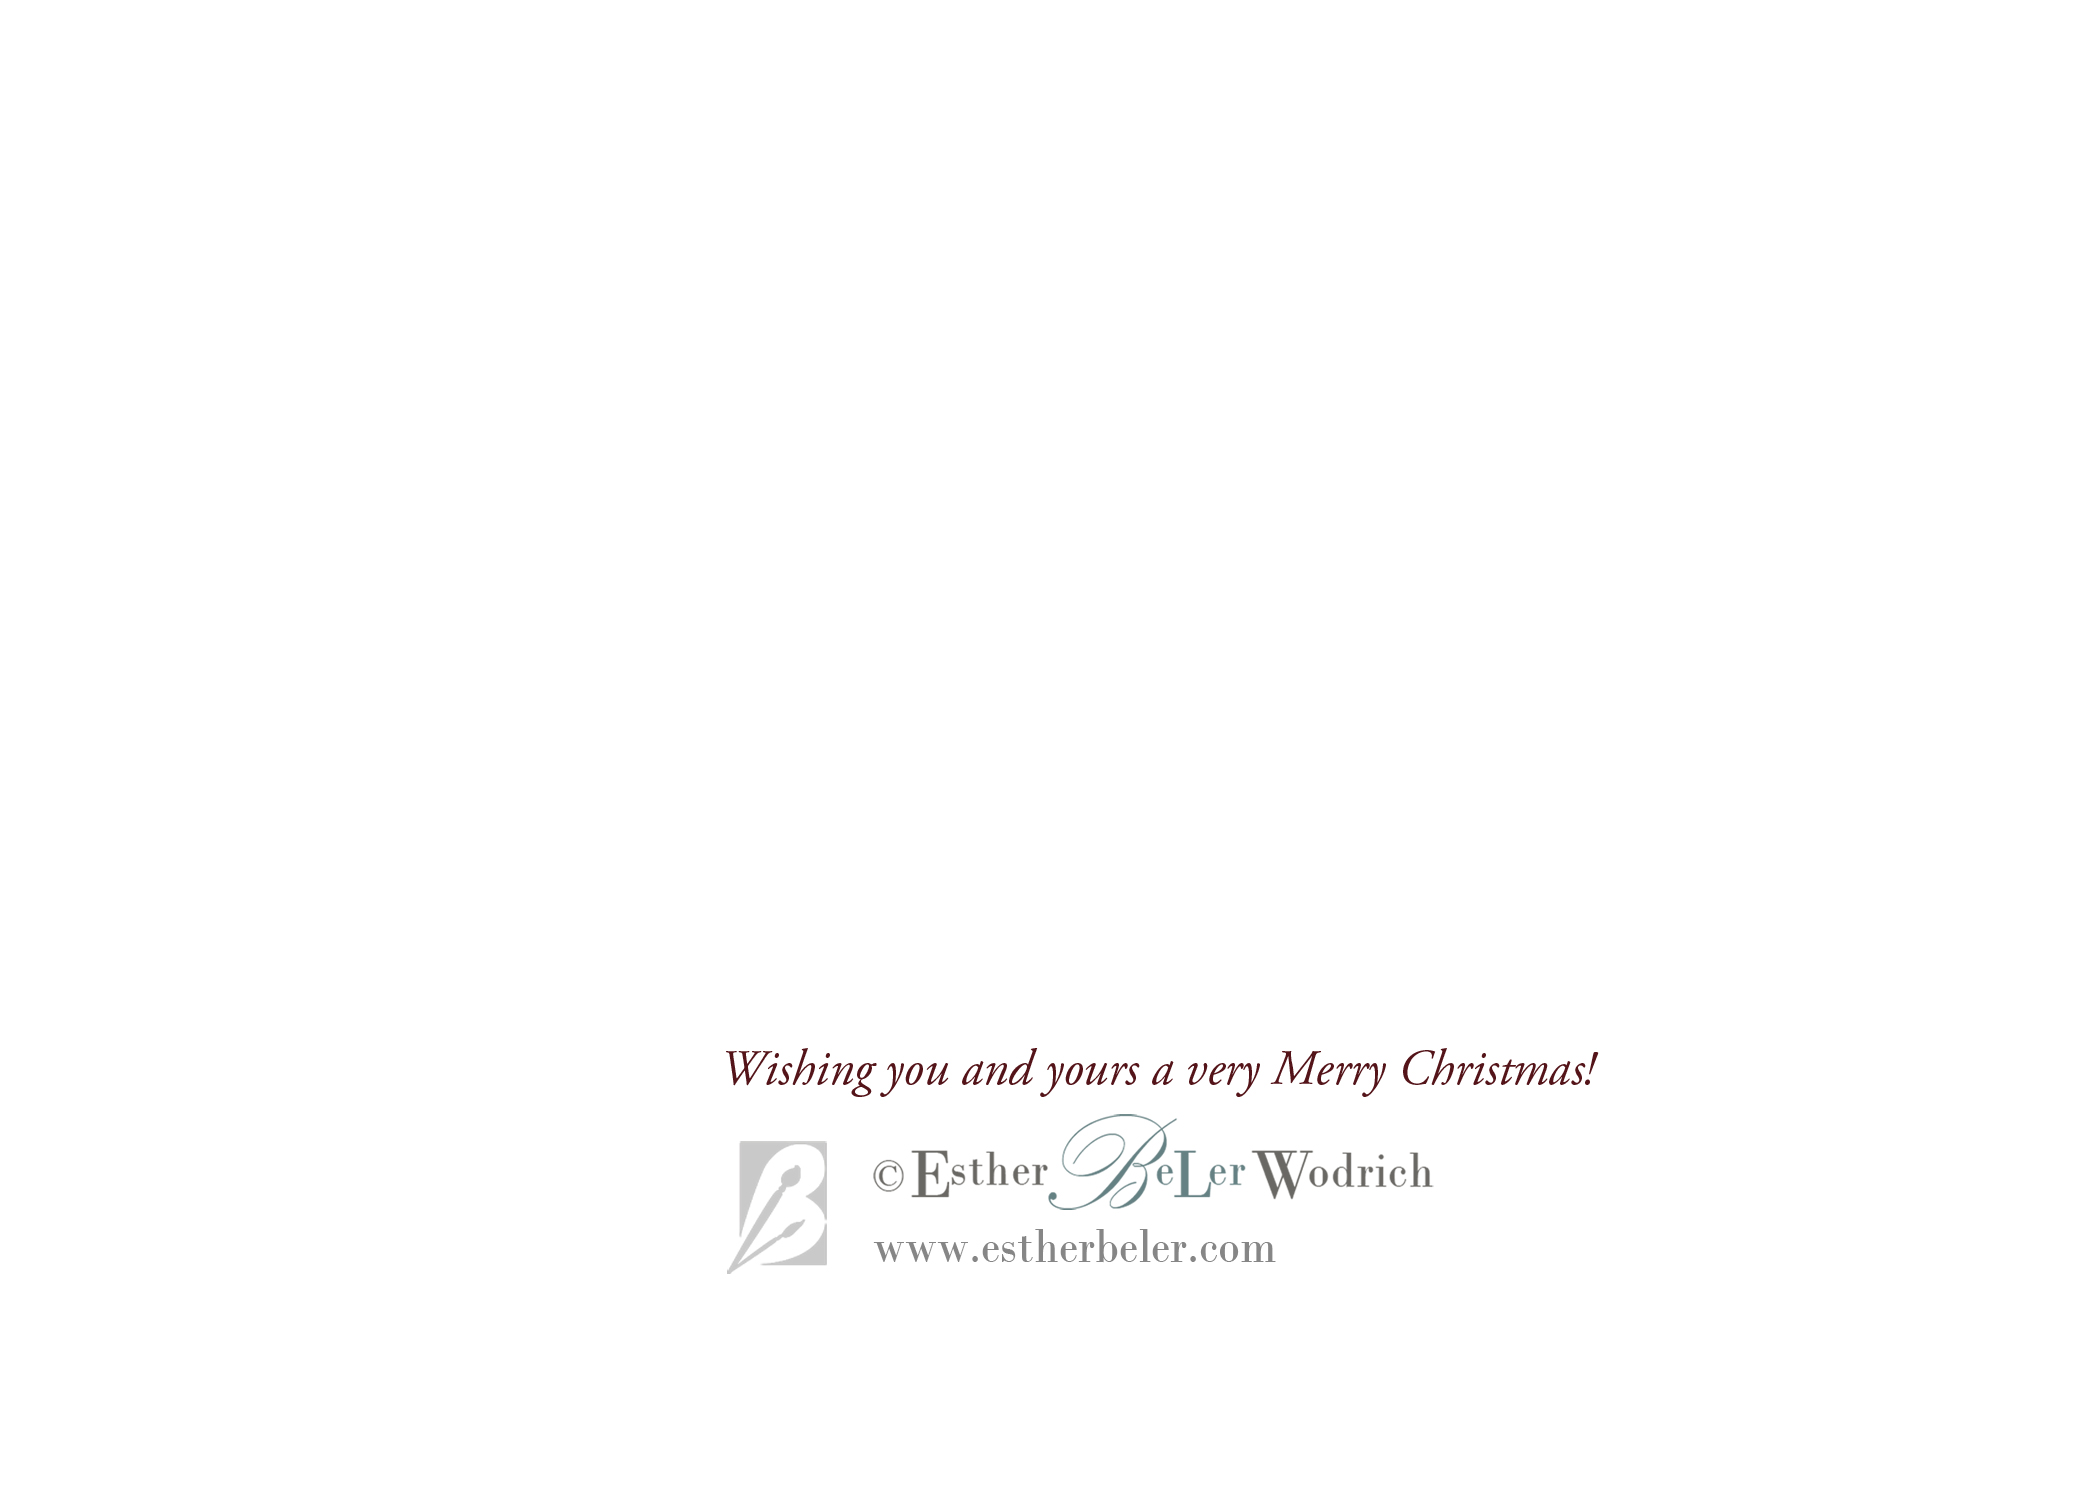 Logo for back side of Christmas Cards by artist Esther BeLer Wodrich